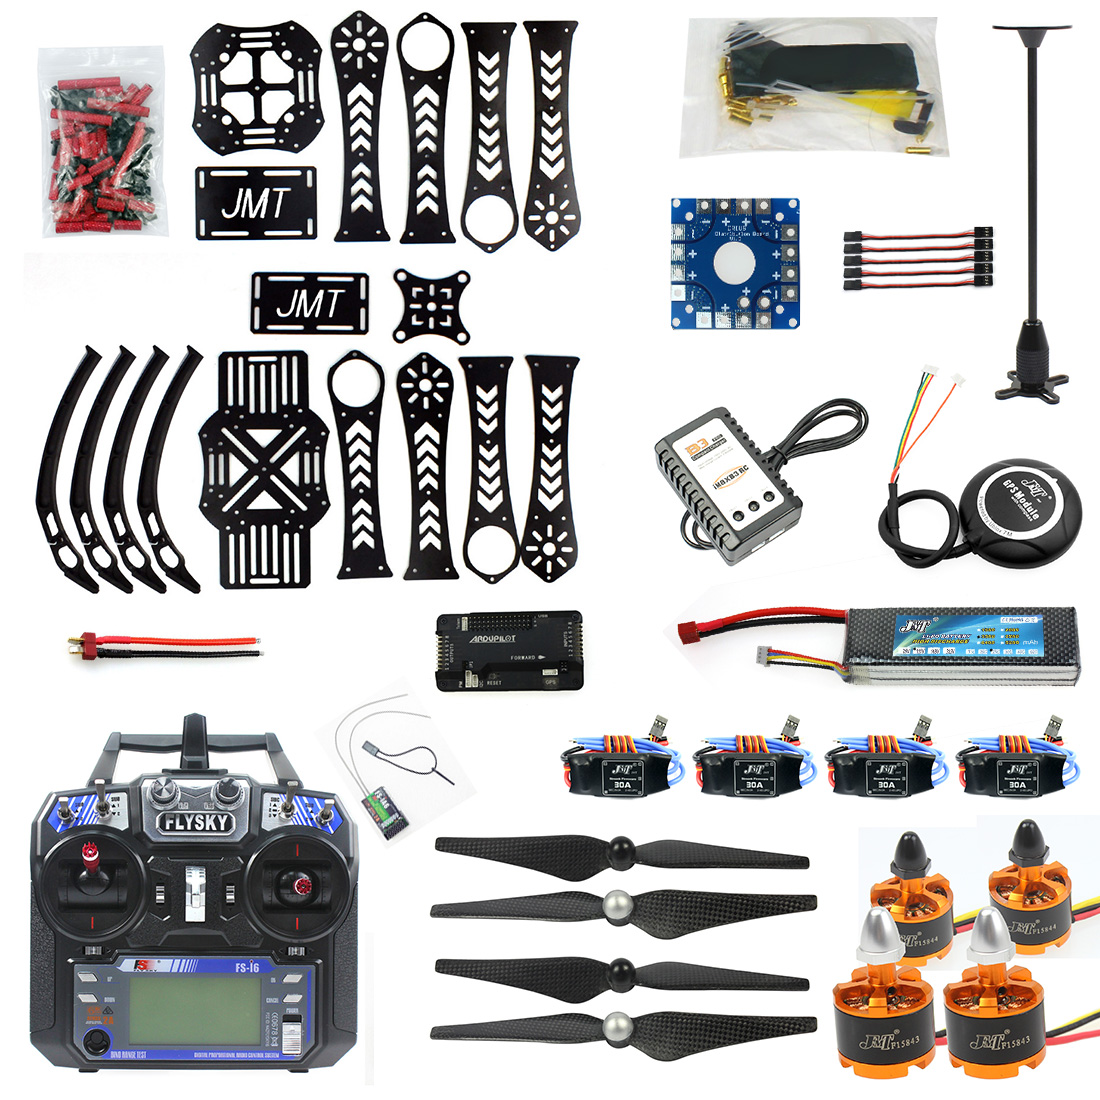 F14892-B DIY RC Drone Quadrocopter X4M360L Frame Kit with GPS <font><b>APM</b></font> <font><b>2.8</b></font> RX TX RTF image